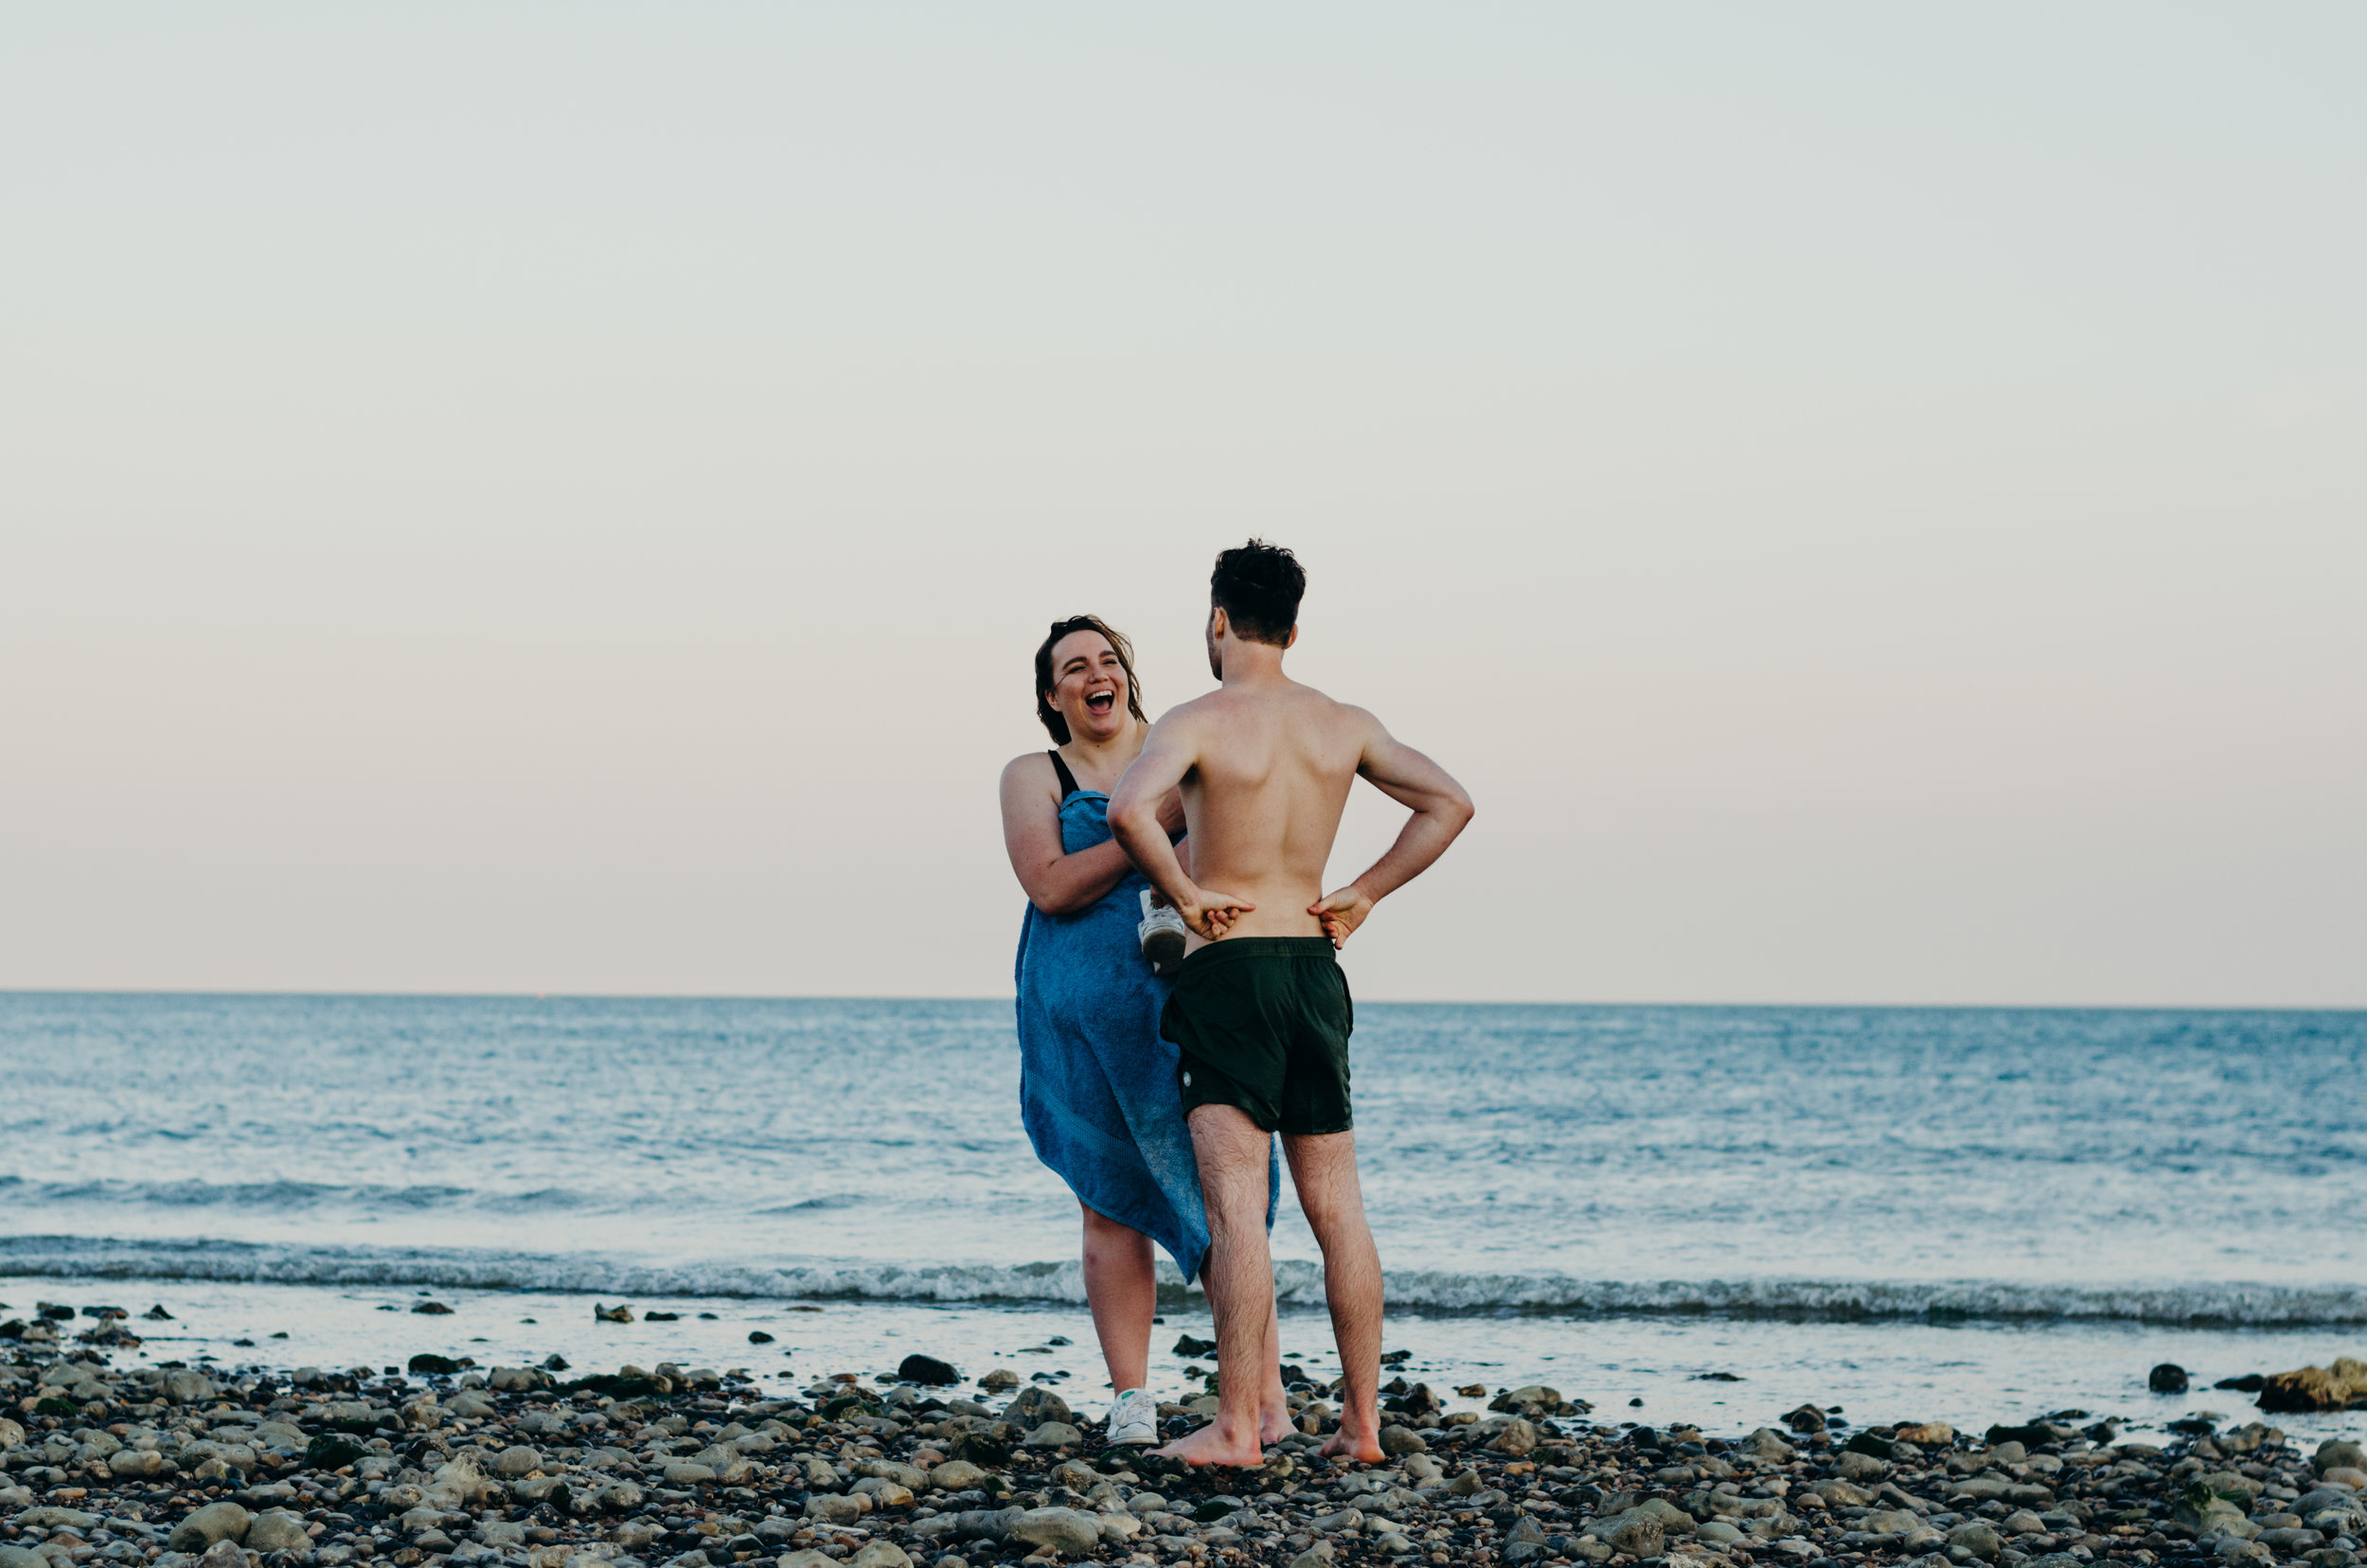 Rebecca & Dougie - Cuckmere Haven - Couple Session - Aiste Saulyte Photography-127.jpg